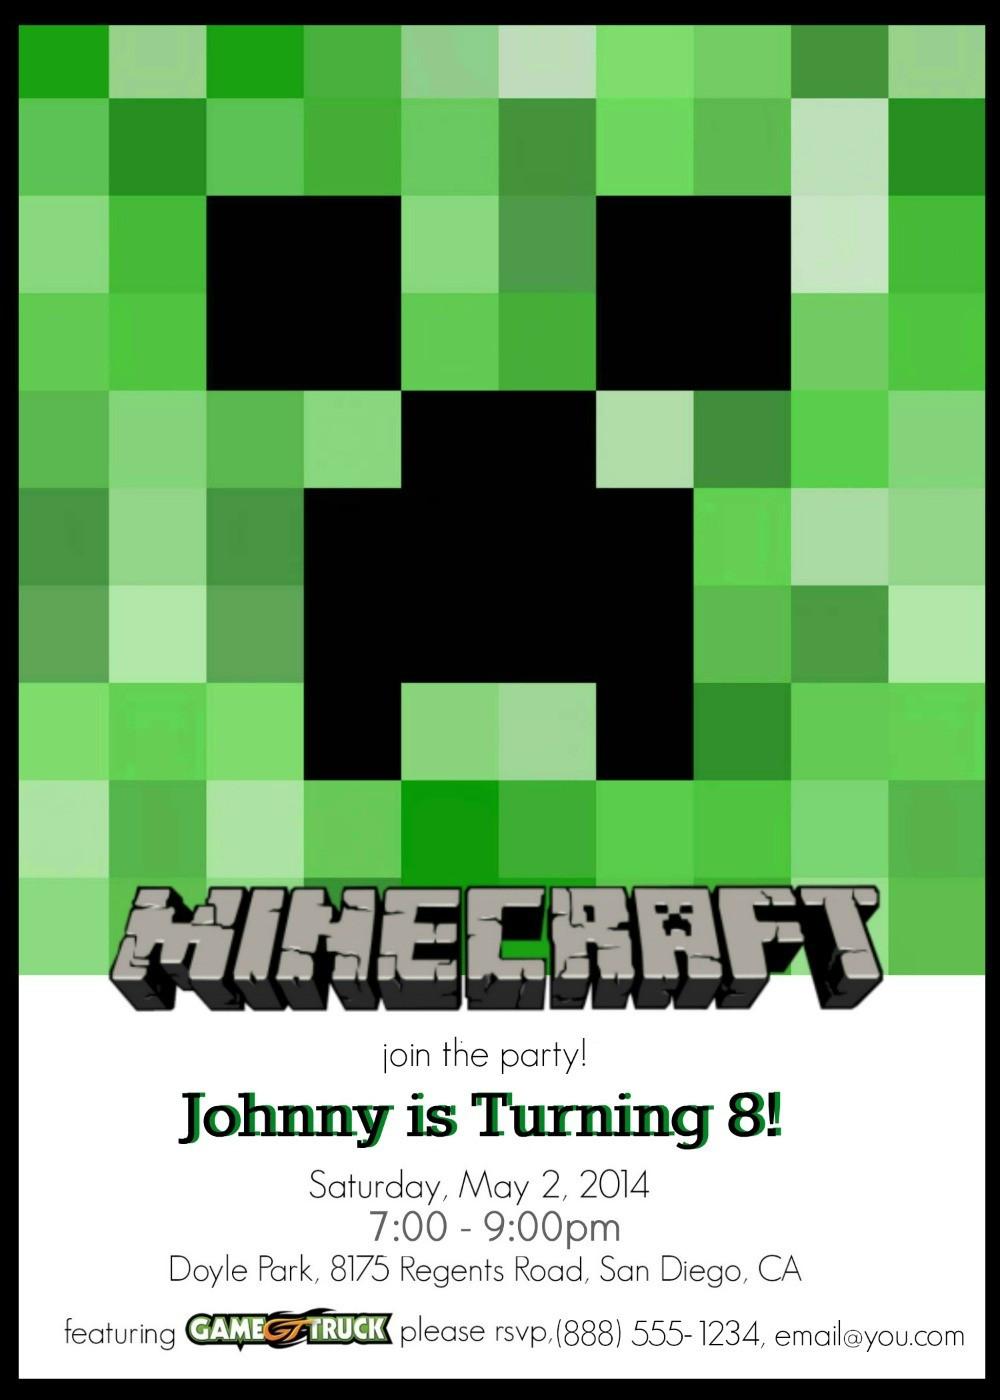 Best ideas about Minecraft Birthday Party Invitations . Save or Pin Make Your Own Custom Printable Minecraft Party Invitations Now.